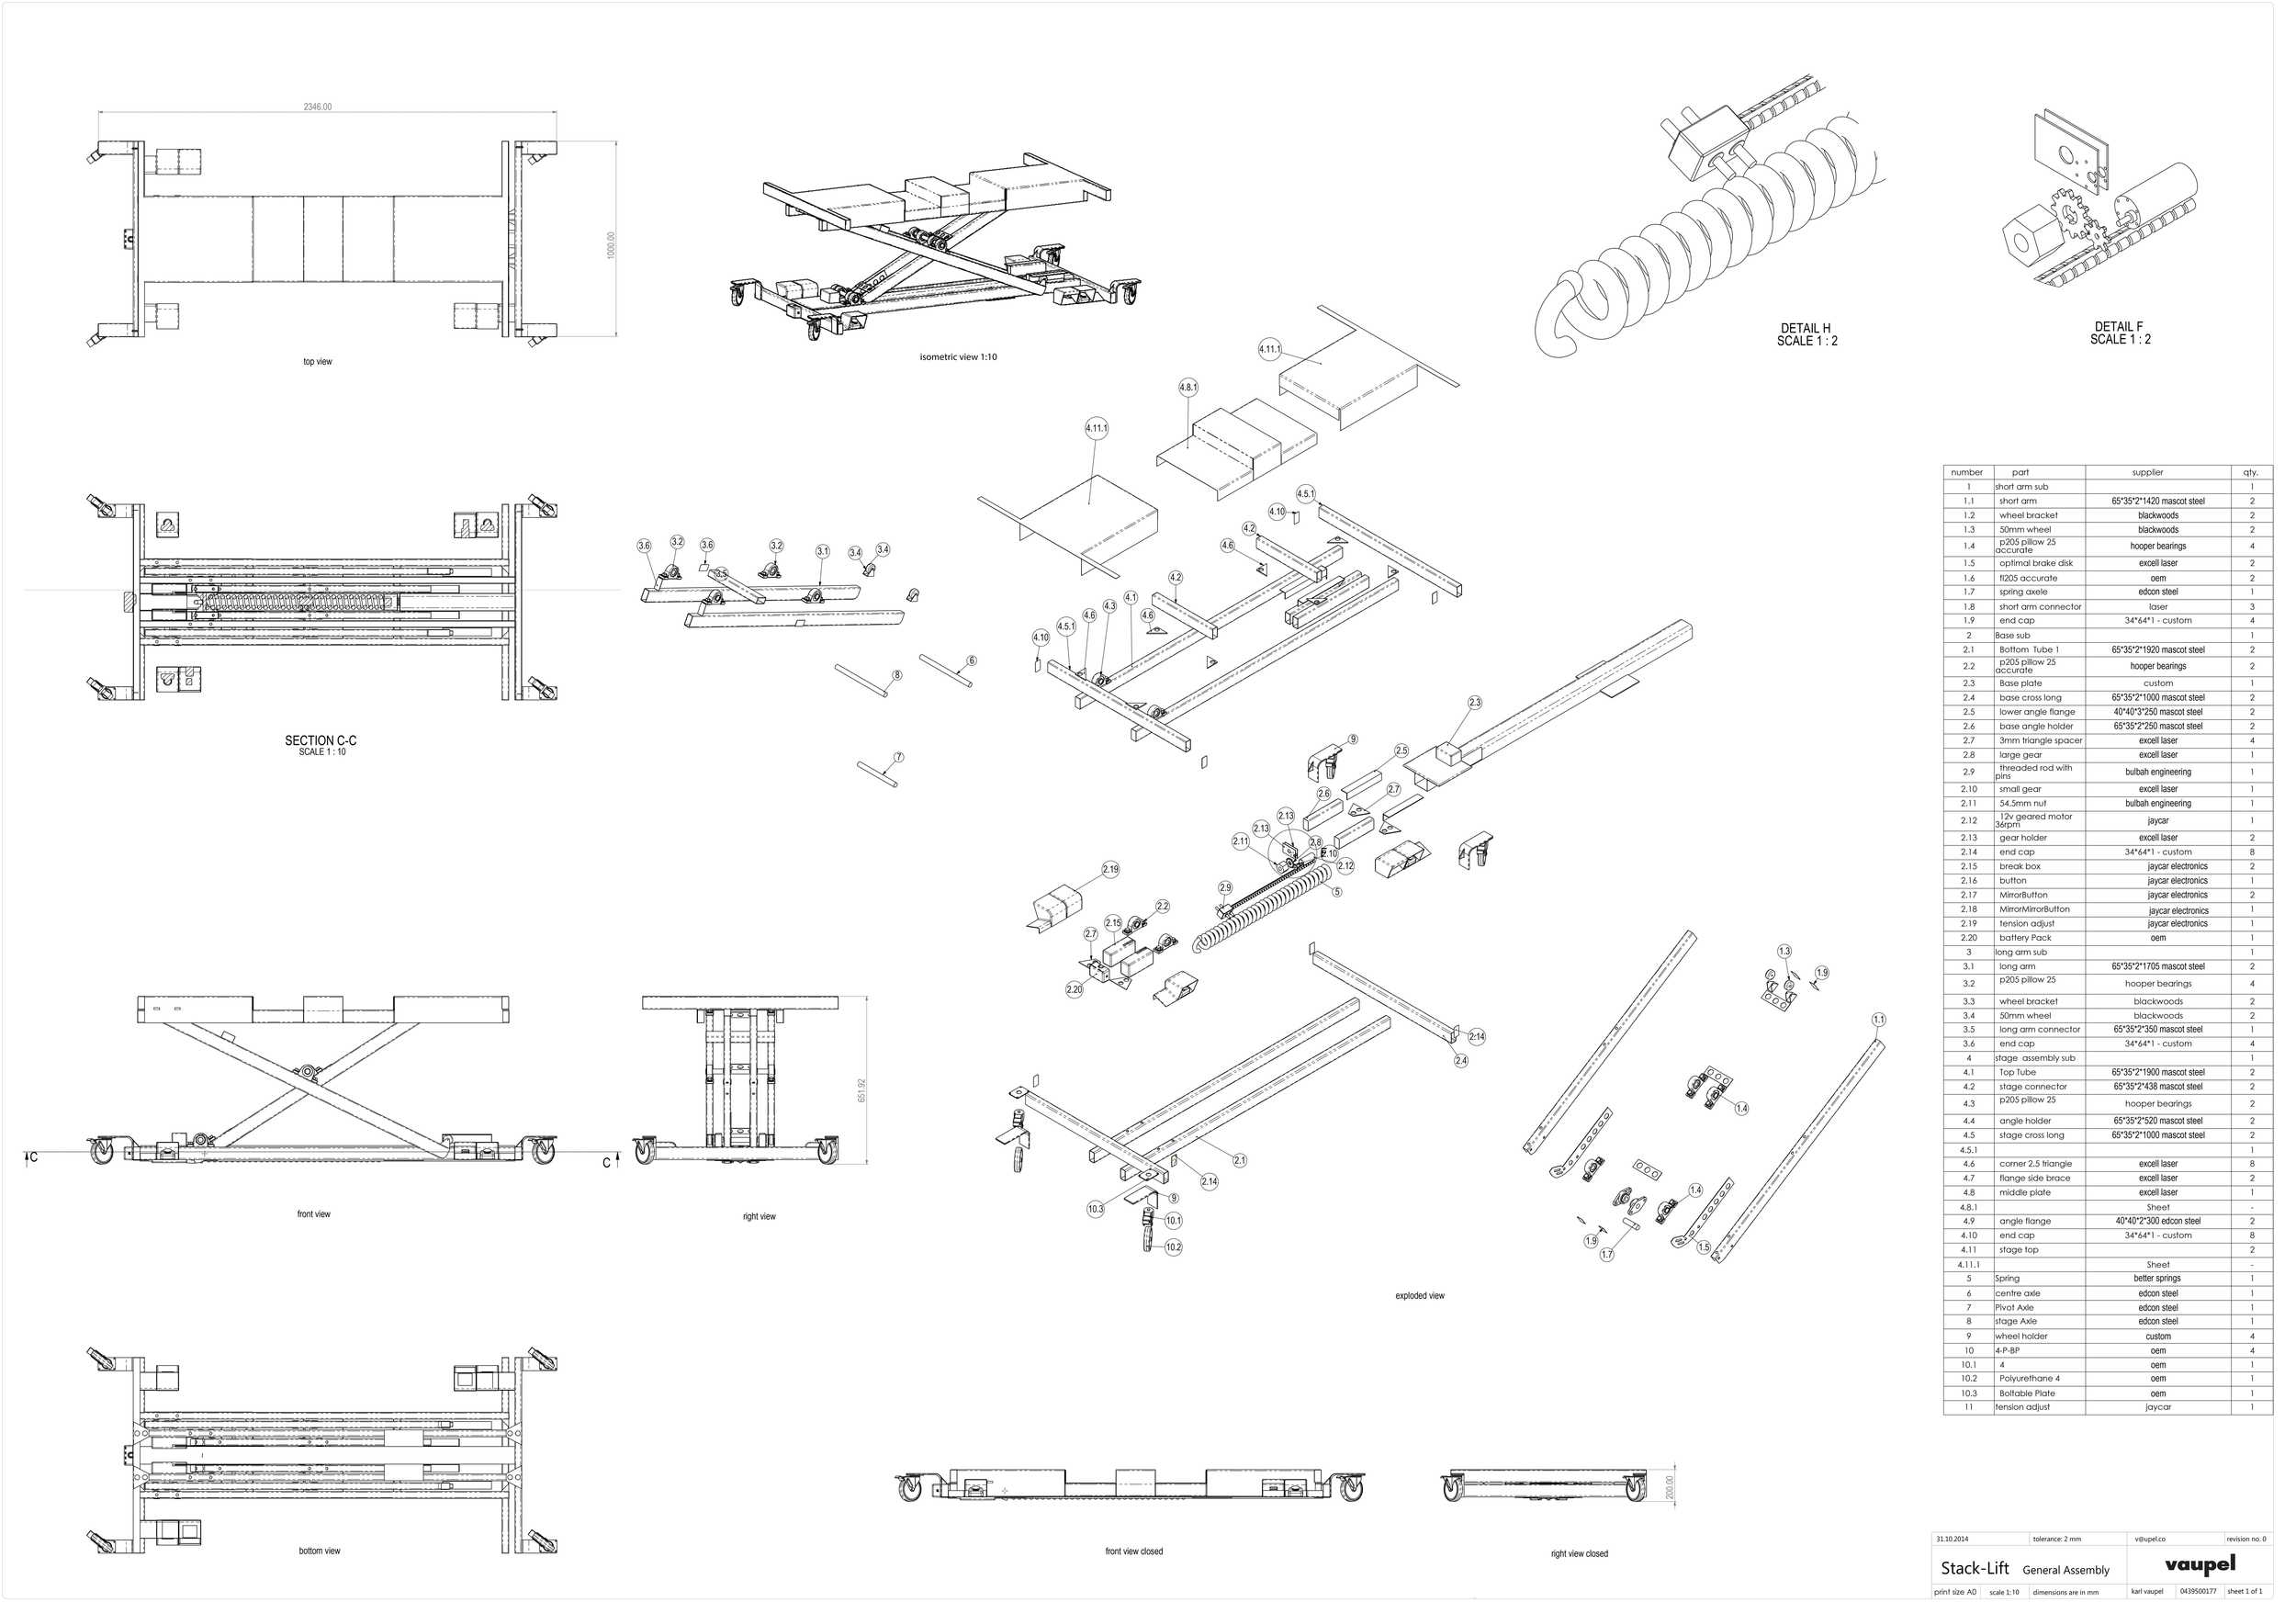 General Assembly of Parts for Stack-Lift Prototype 1